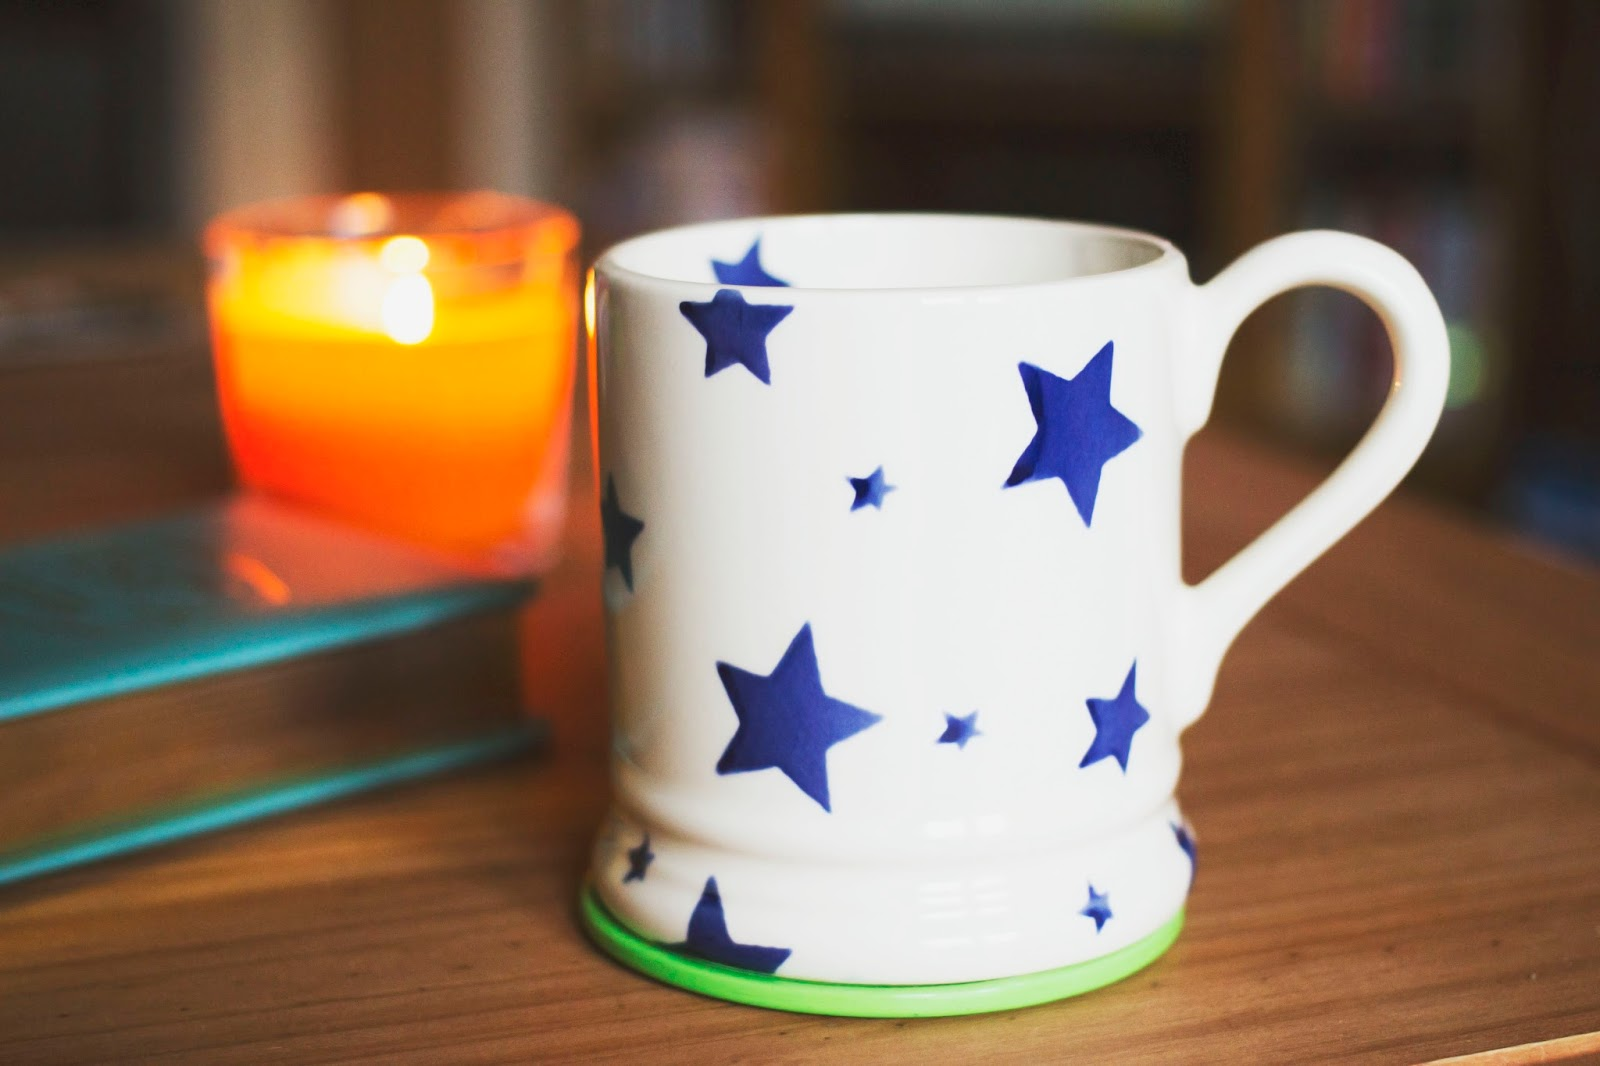 Emma Bridgewater, Emma Bridgewater Starry Skies, Emma Bridgewater Seconds, Emma Bridgewater Starry Skies Seconds Mug, Stoke on Trent Potteries, Katie Writes Blog, Katie Writes,